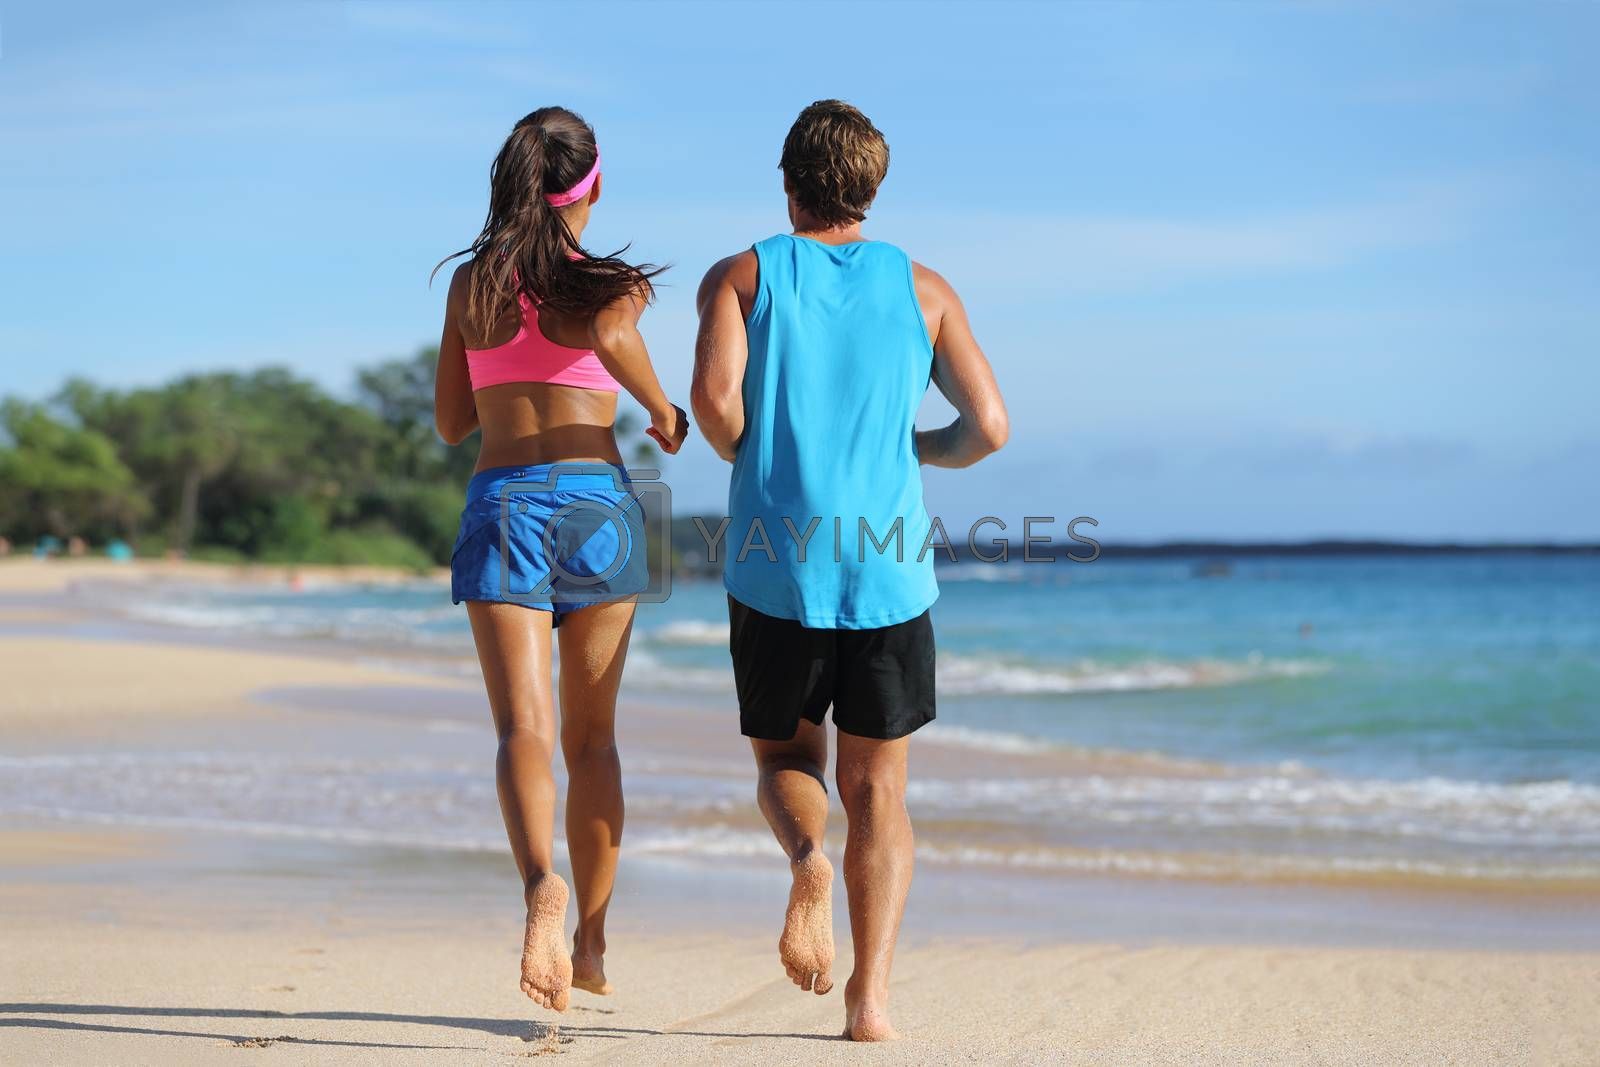 Two fitness athletes running together on beach. People from behind jogging away barefoot on sand on tropical travel destination. Healthy fit young adults with muscular slim legs training cardio.